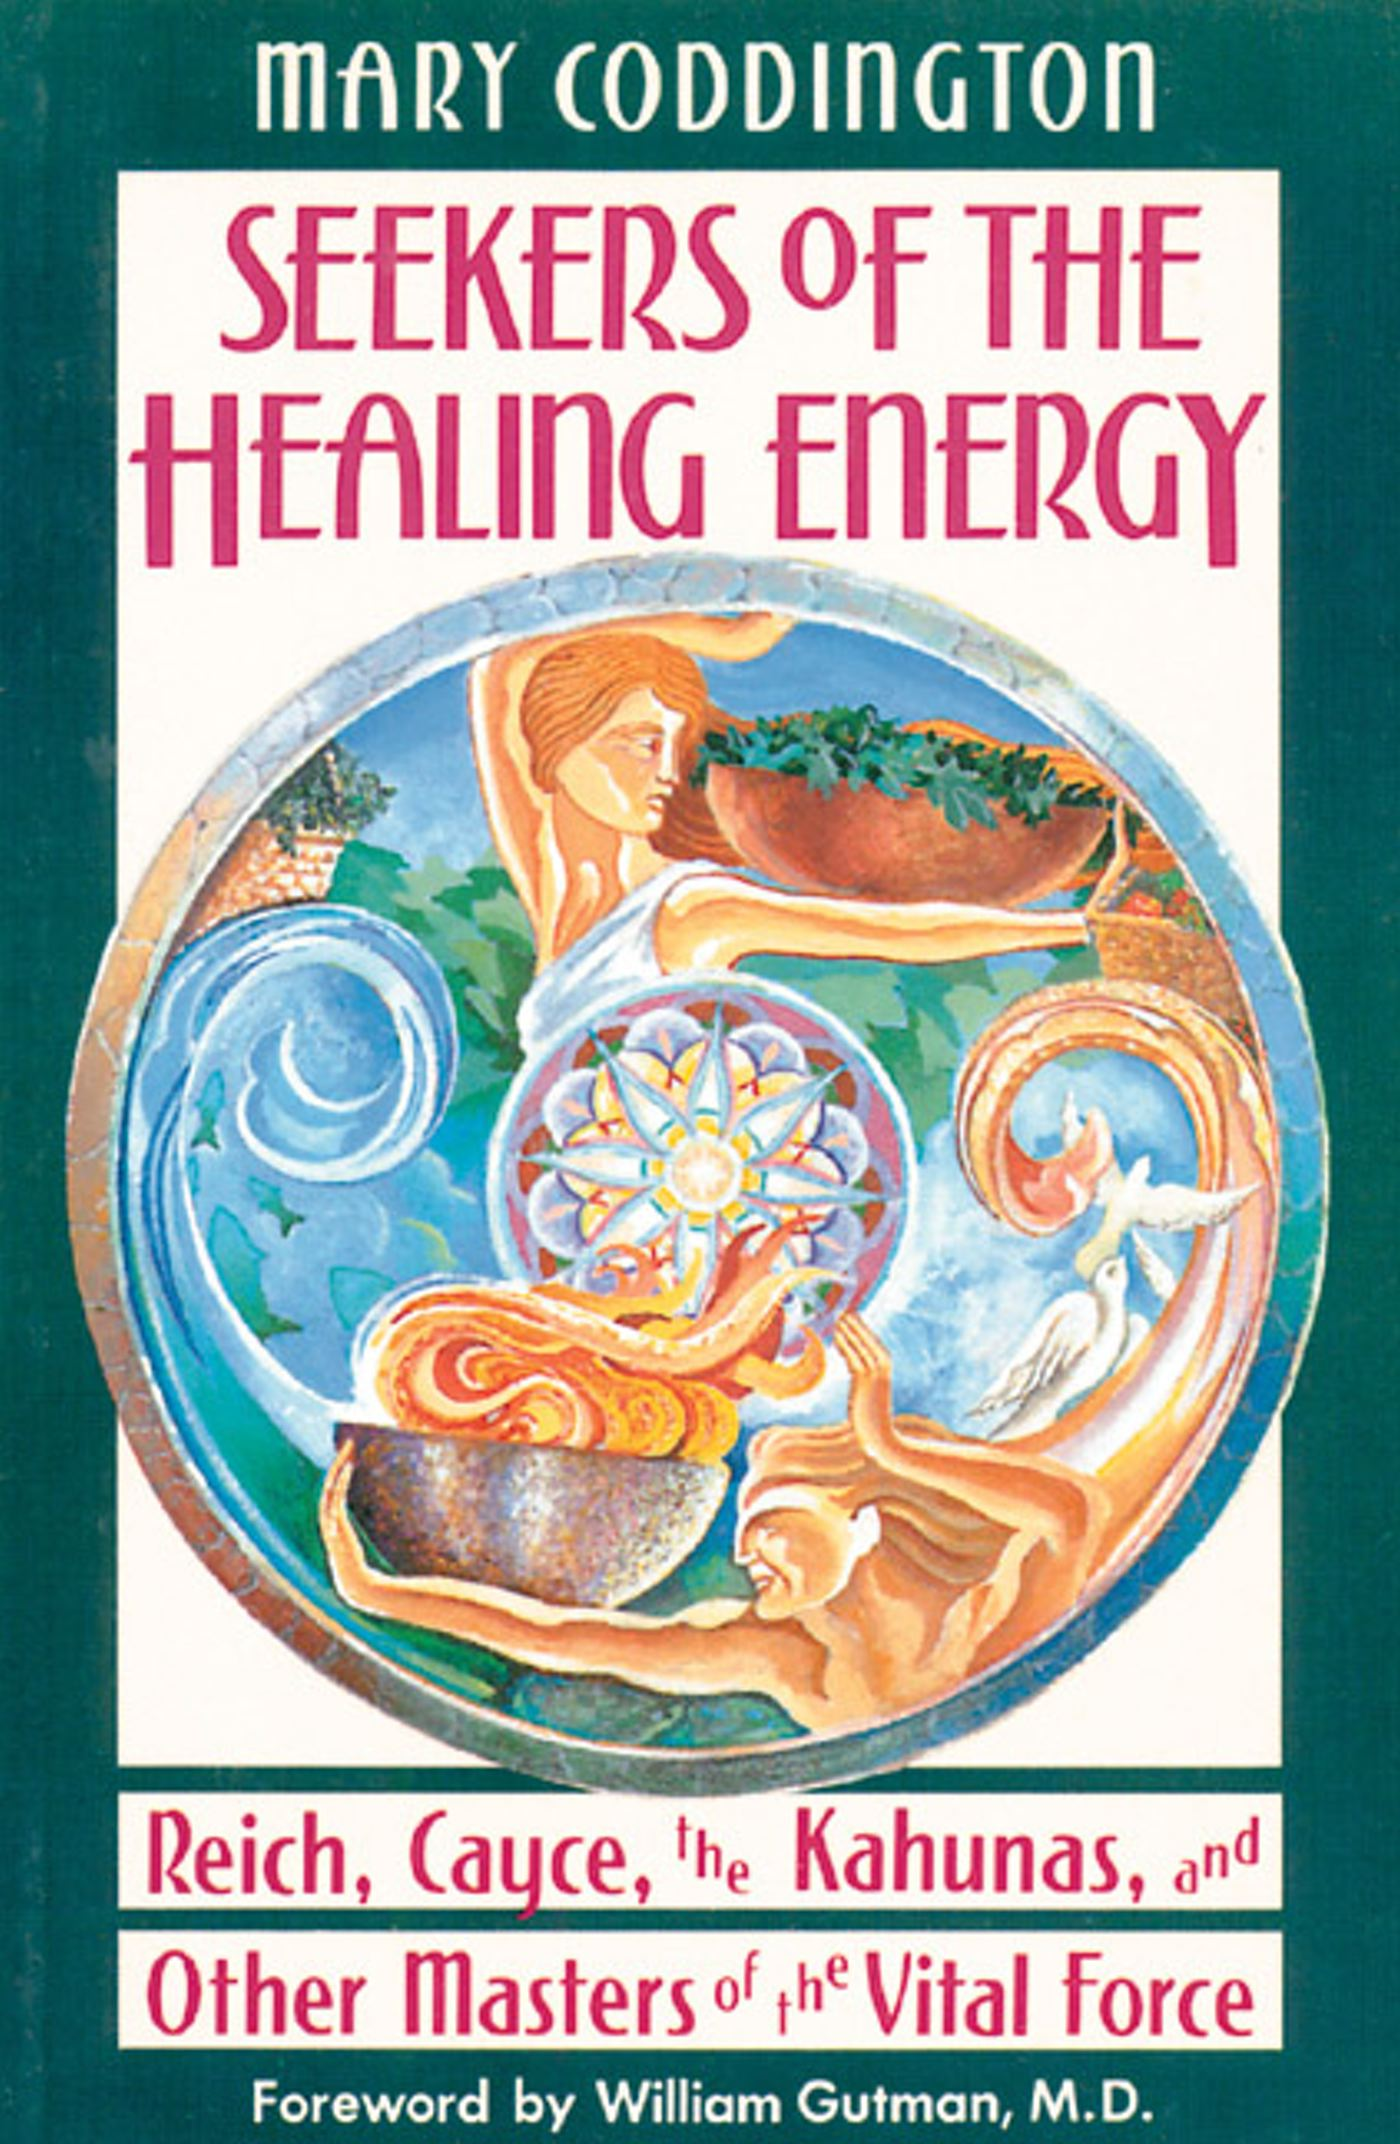 Seekers of the healing energy 9780892813131 hr